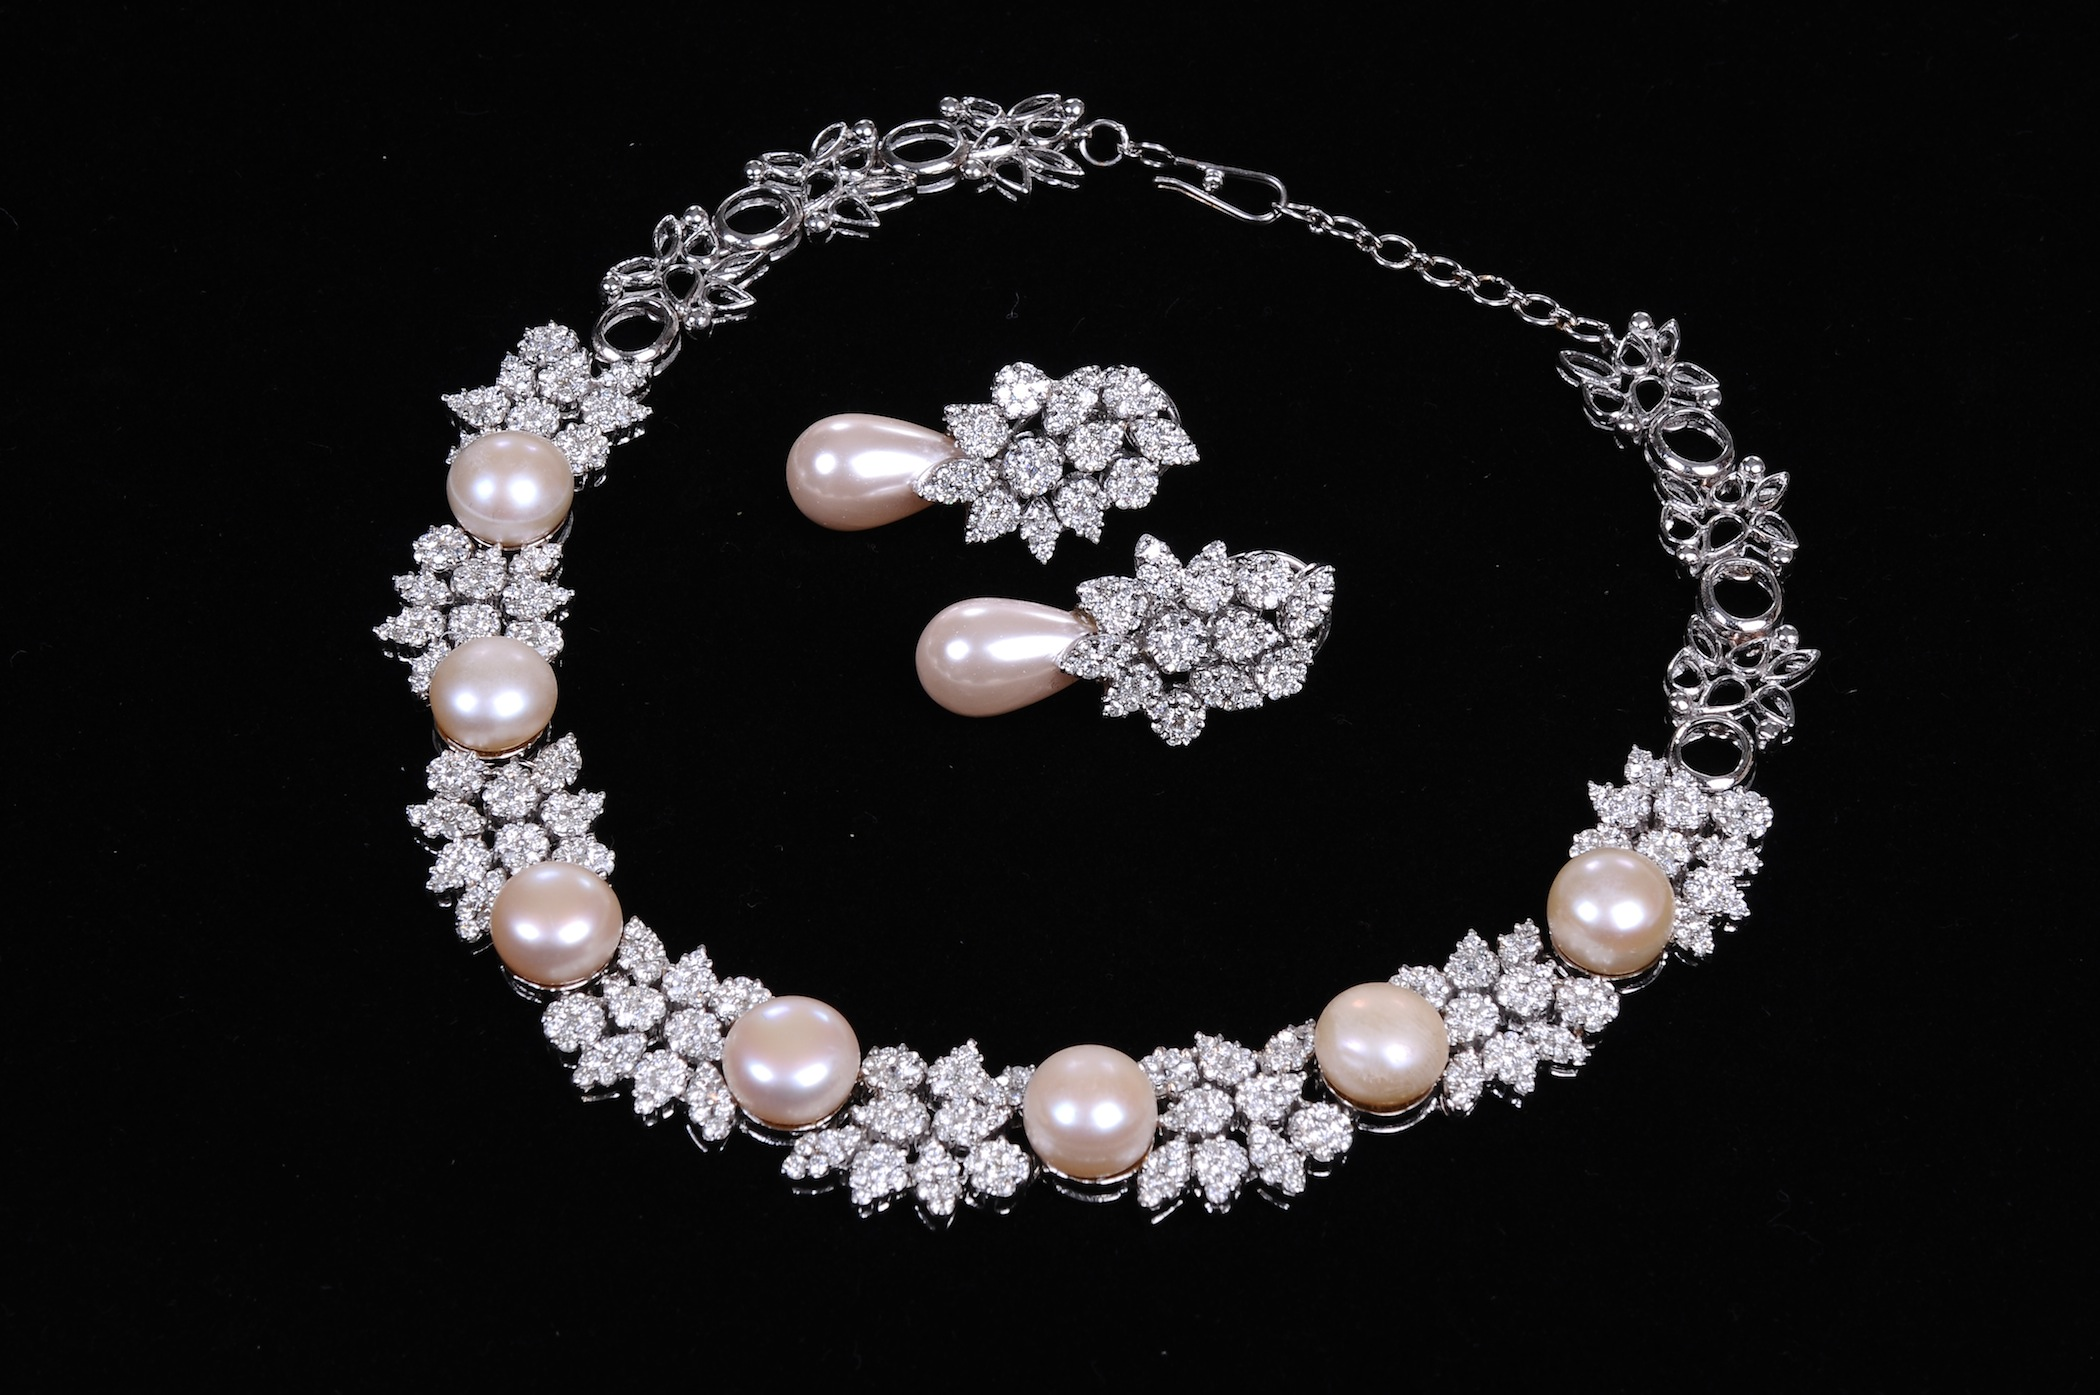 Jewellery for Diamond pearl jewelry sets